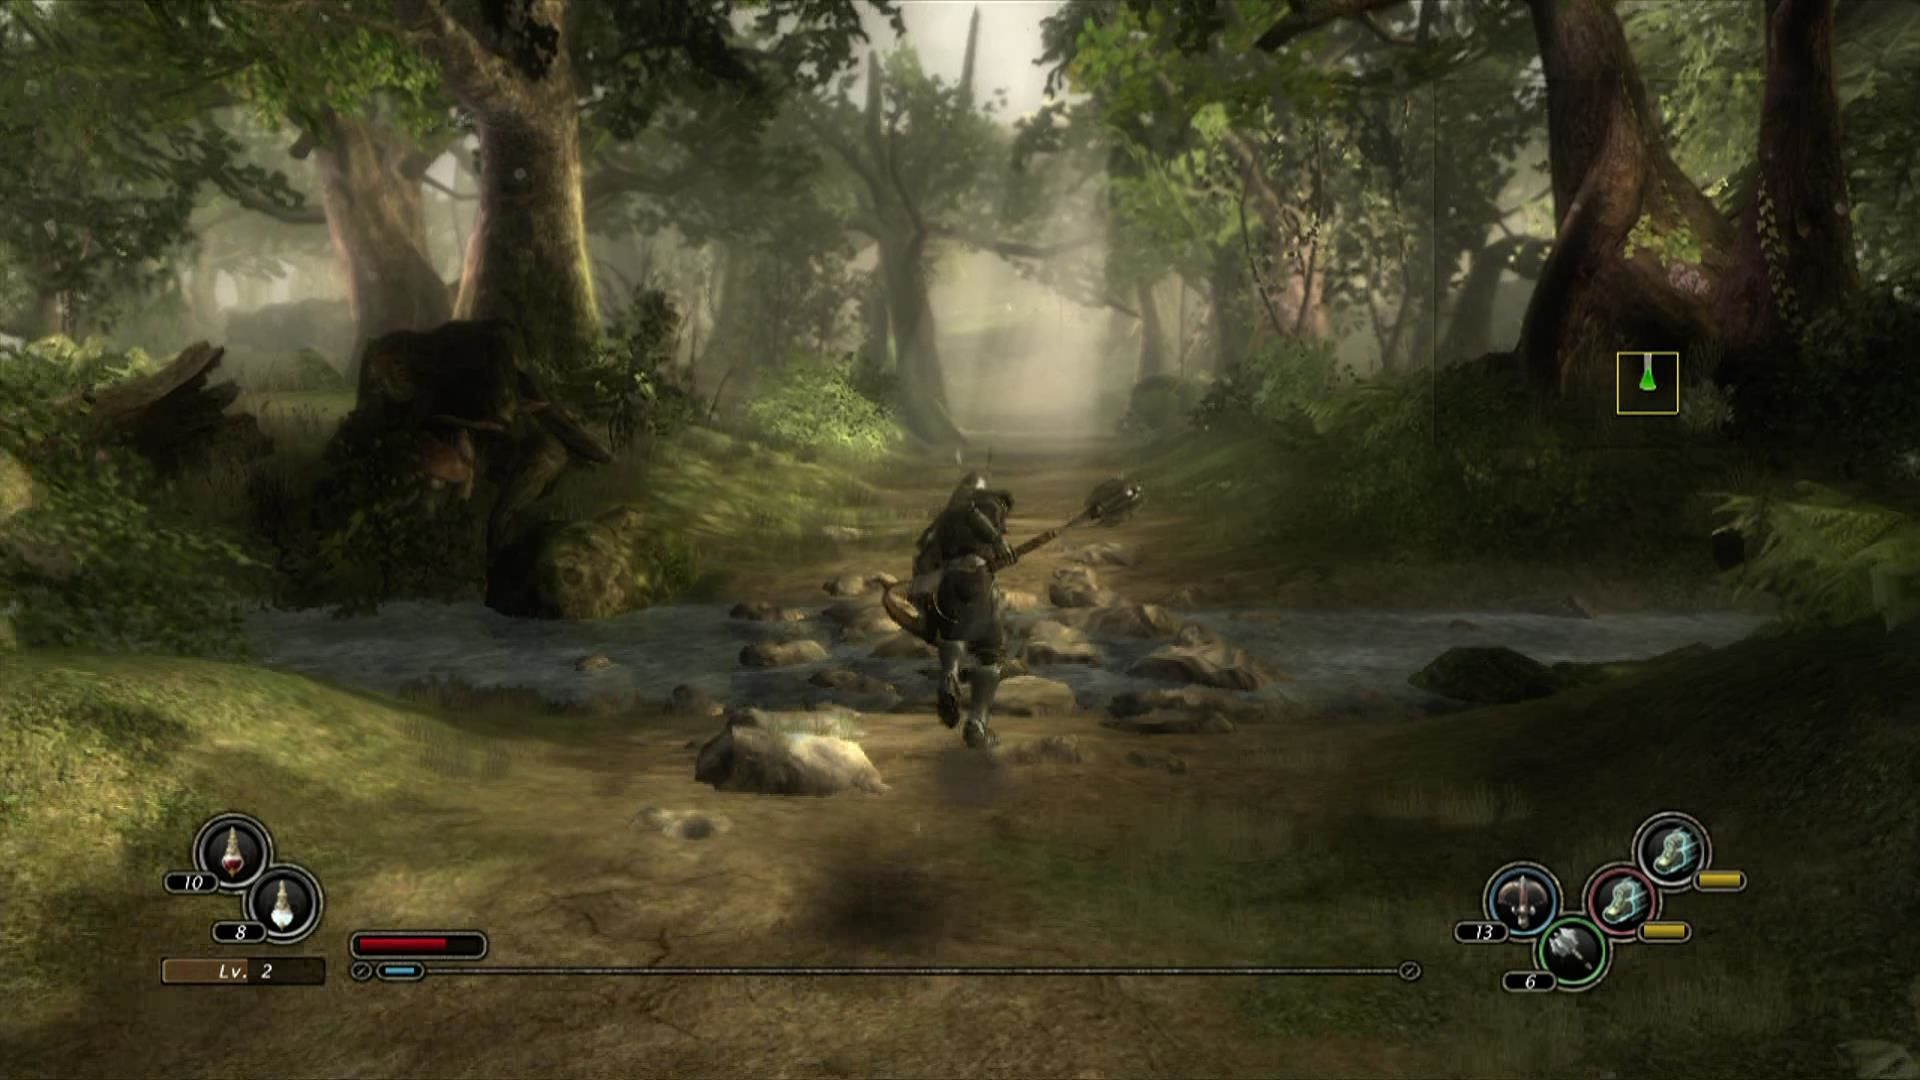 Kingdom Under Fire: Circle of Doom Xbox 360 Second area of the first level, some lush forest